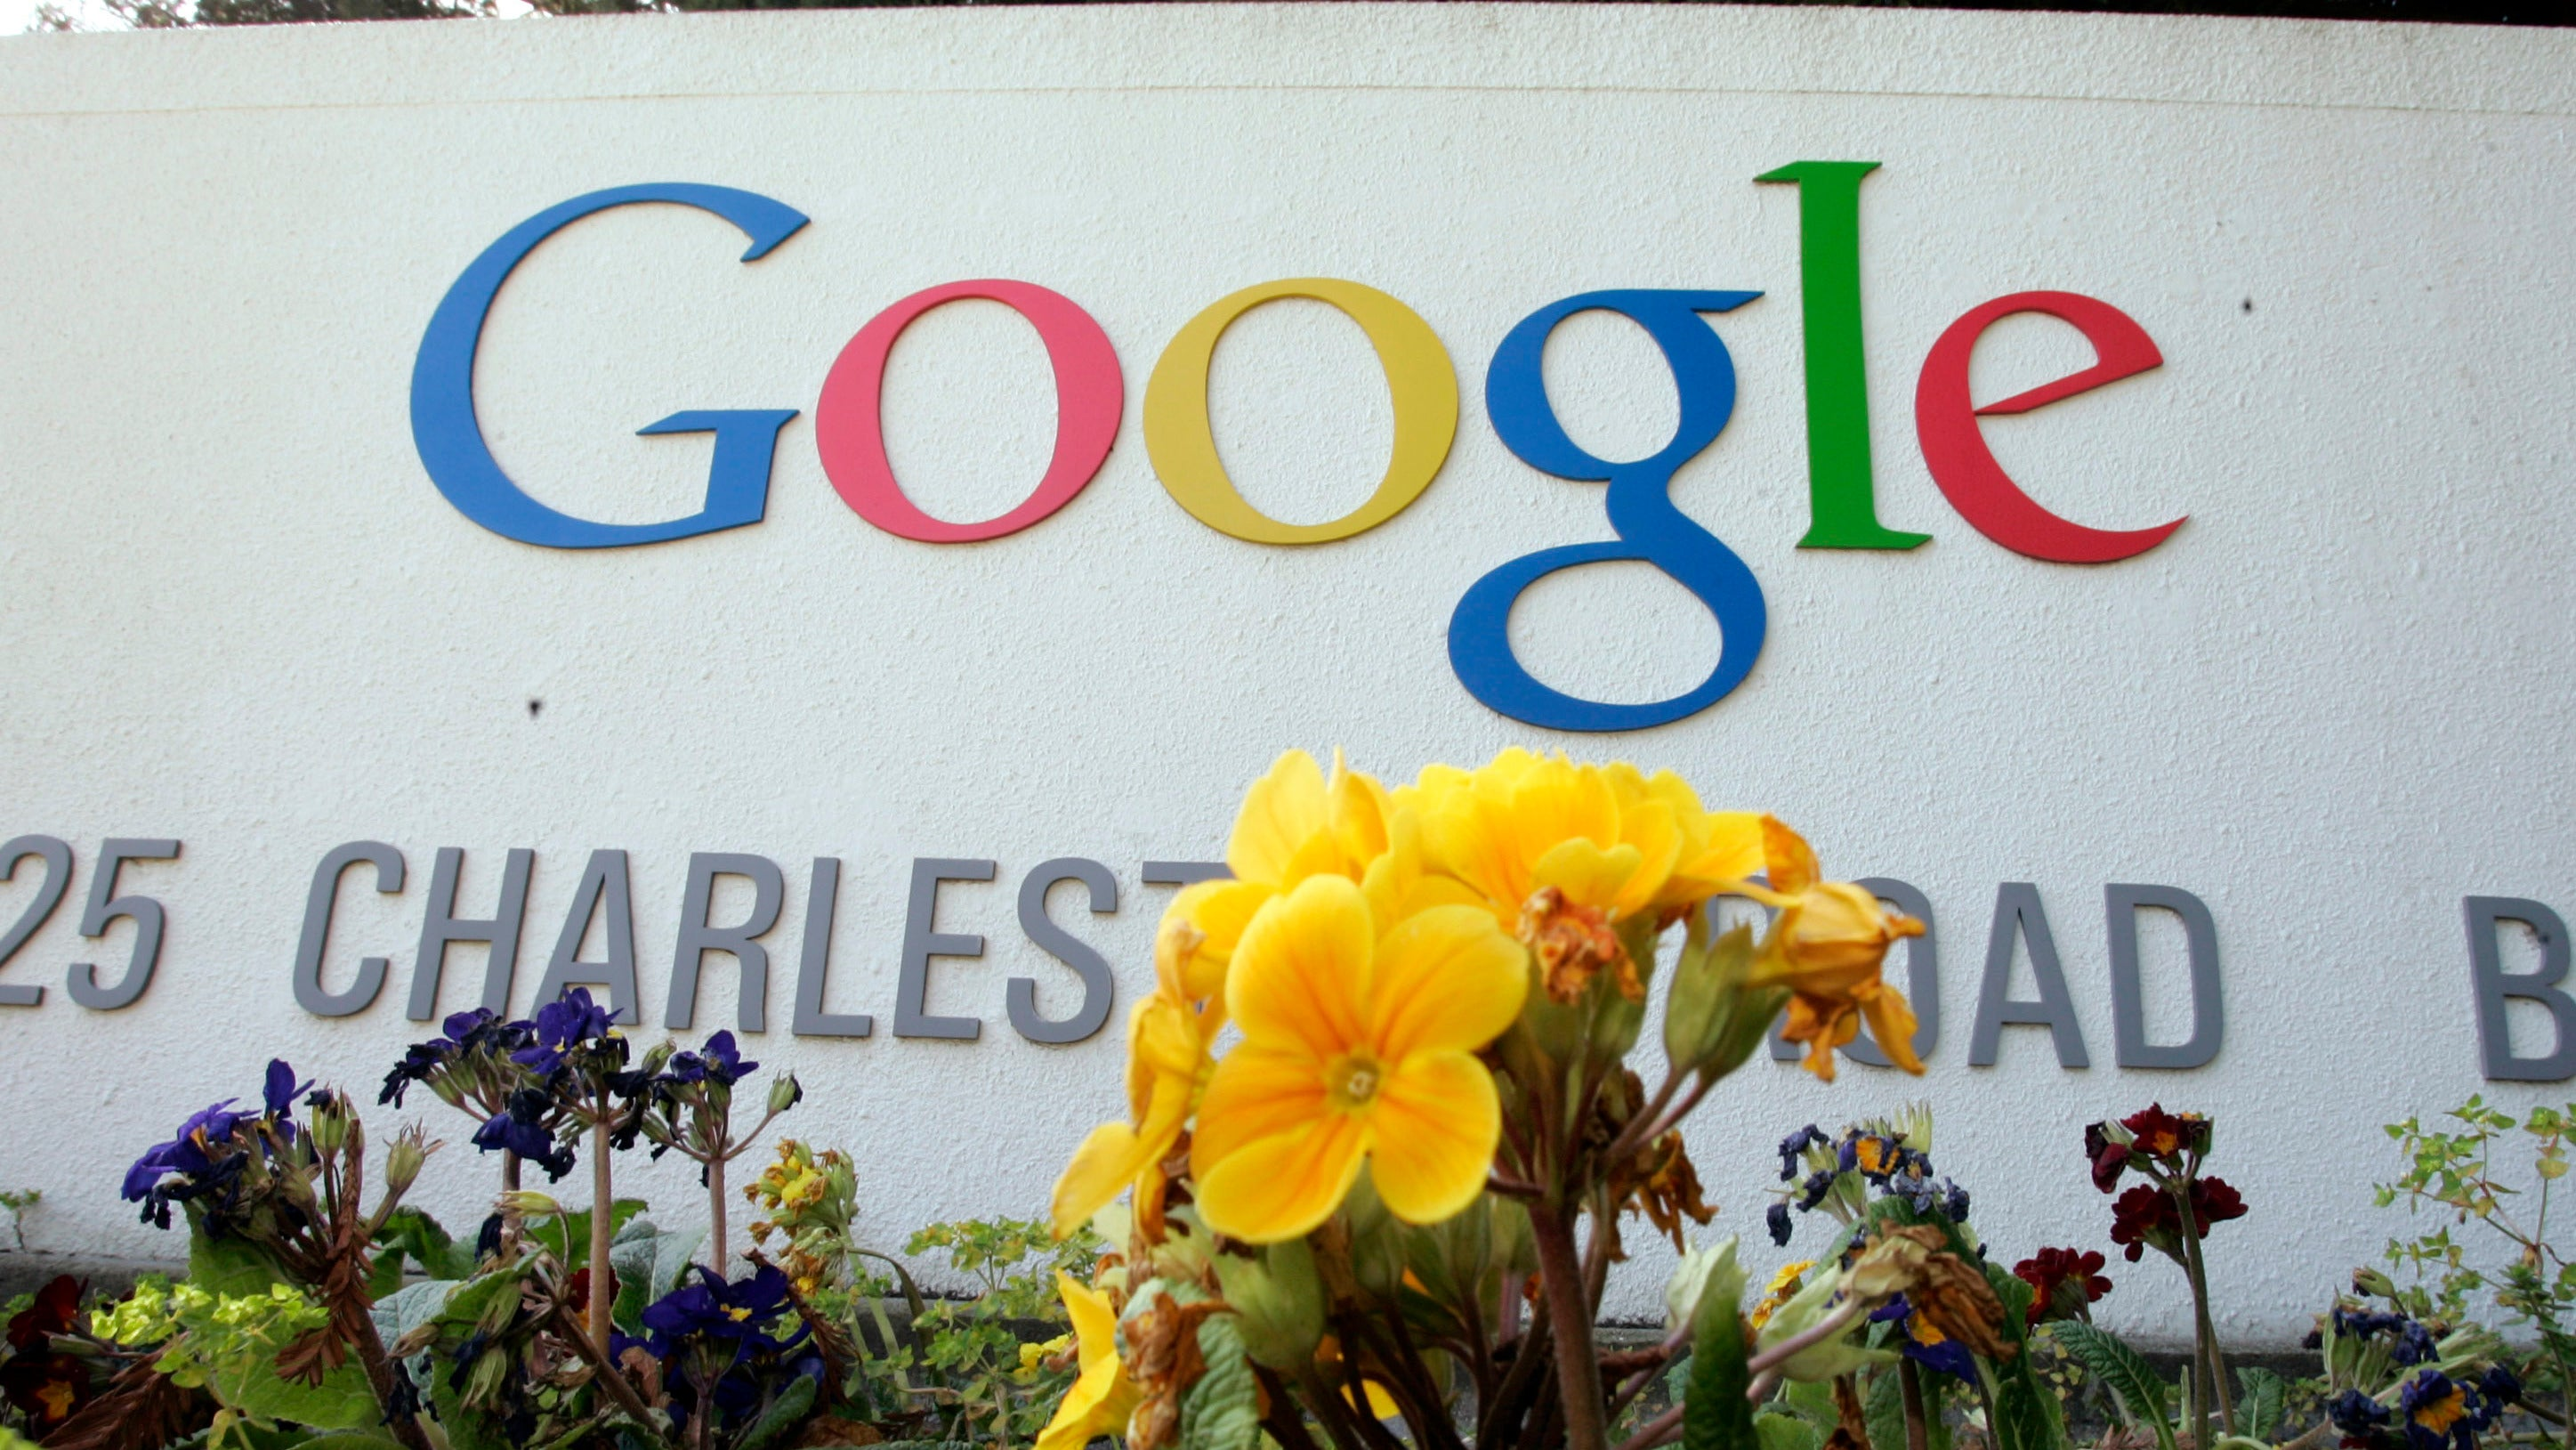 Google Says Plan To Partner With News Publishers On Subscriptions Still In Early Stages